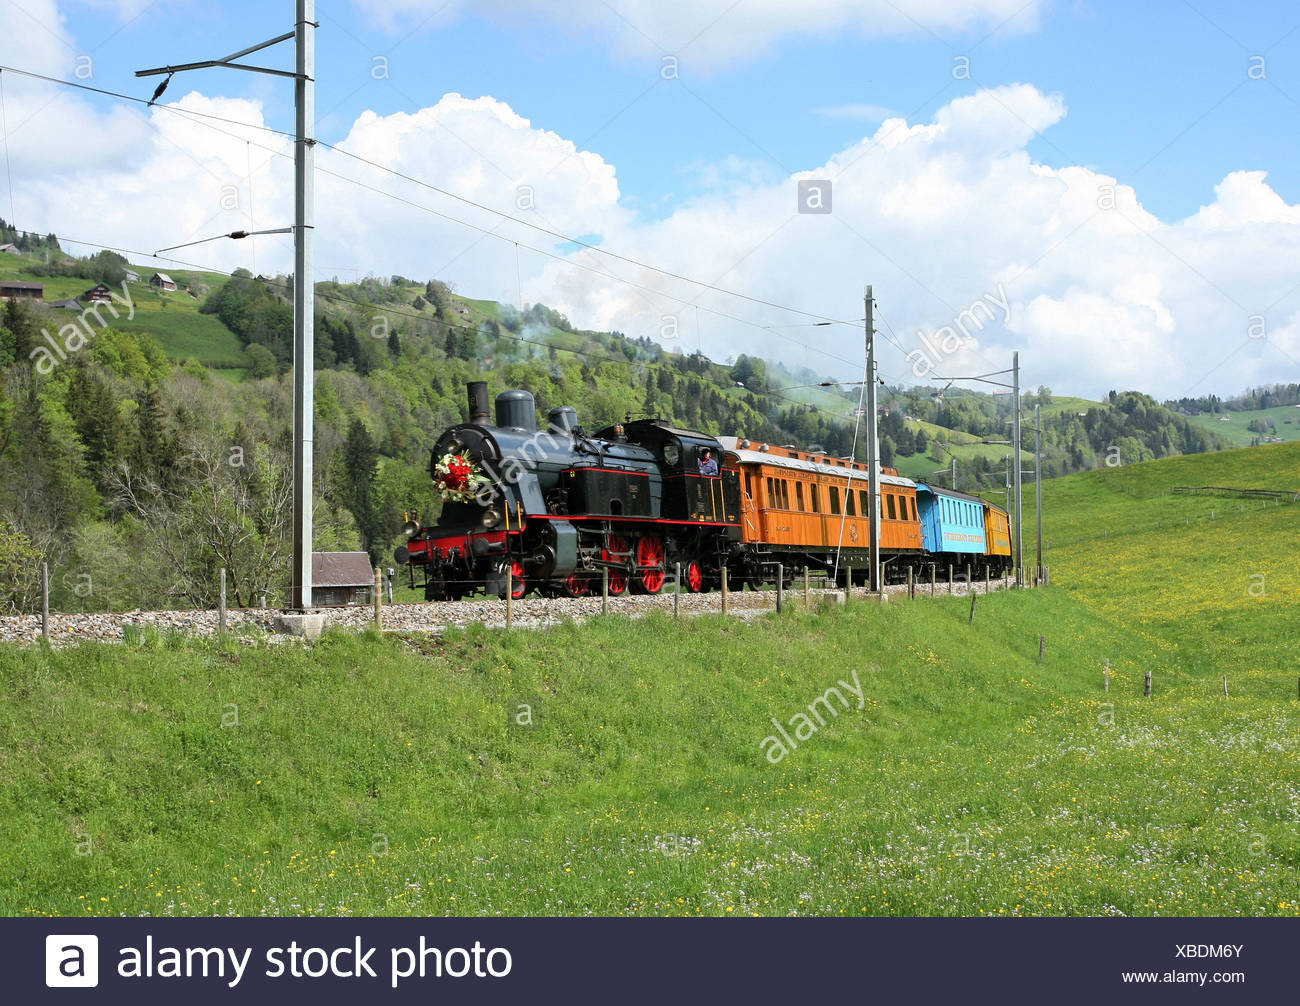 Sudeste road Amor express train Cupido Express tren de carretera de vapor vapor Steam Train nostalgia nostalgia Imagen De Stock